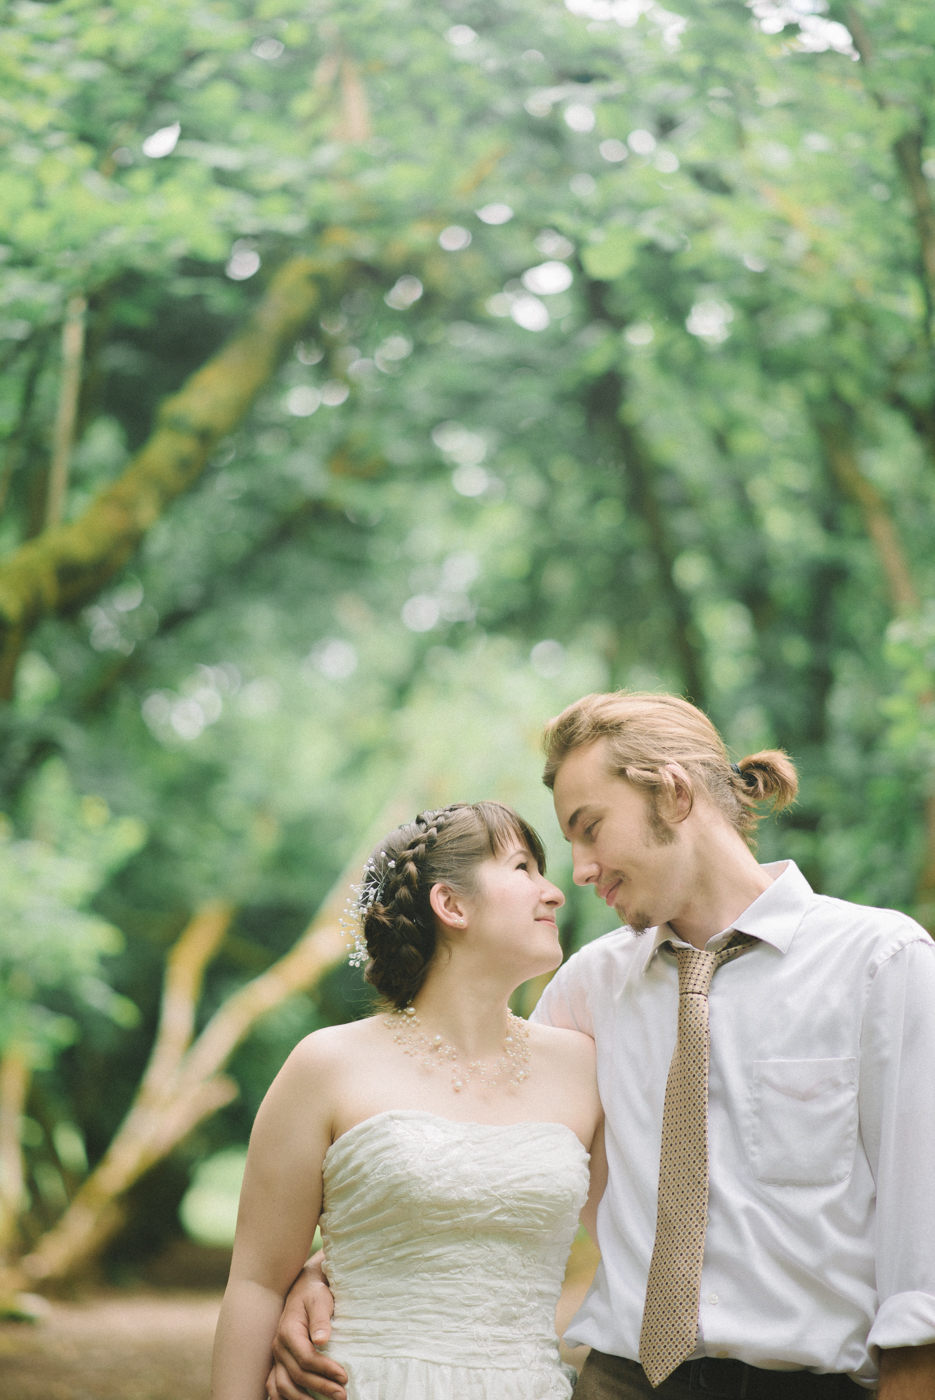 Dorris-Ranch-Wedding-Couple-Photos-Springfield-Oregon-Shelley-Marie-Photo-20